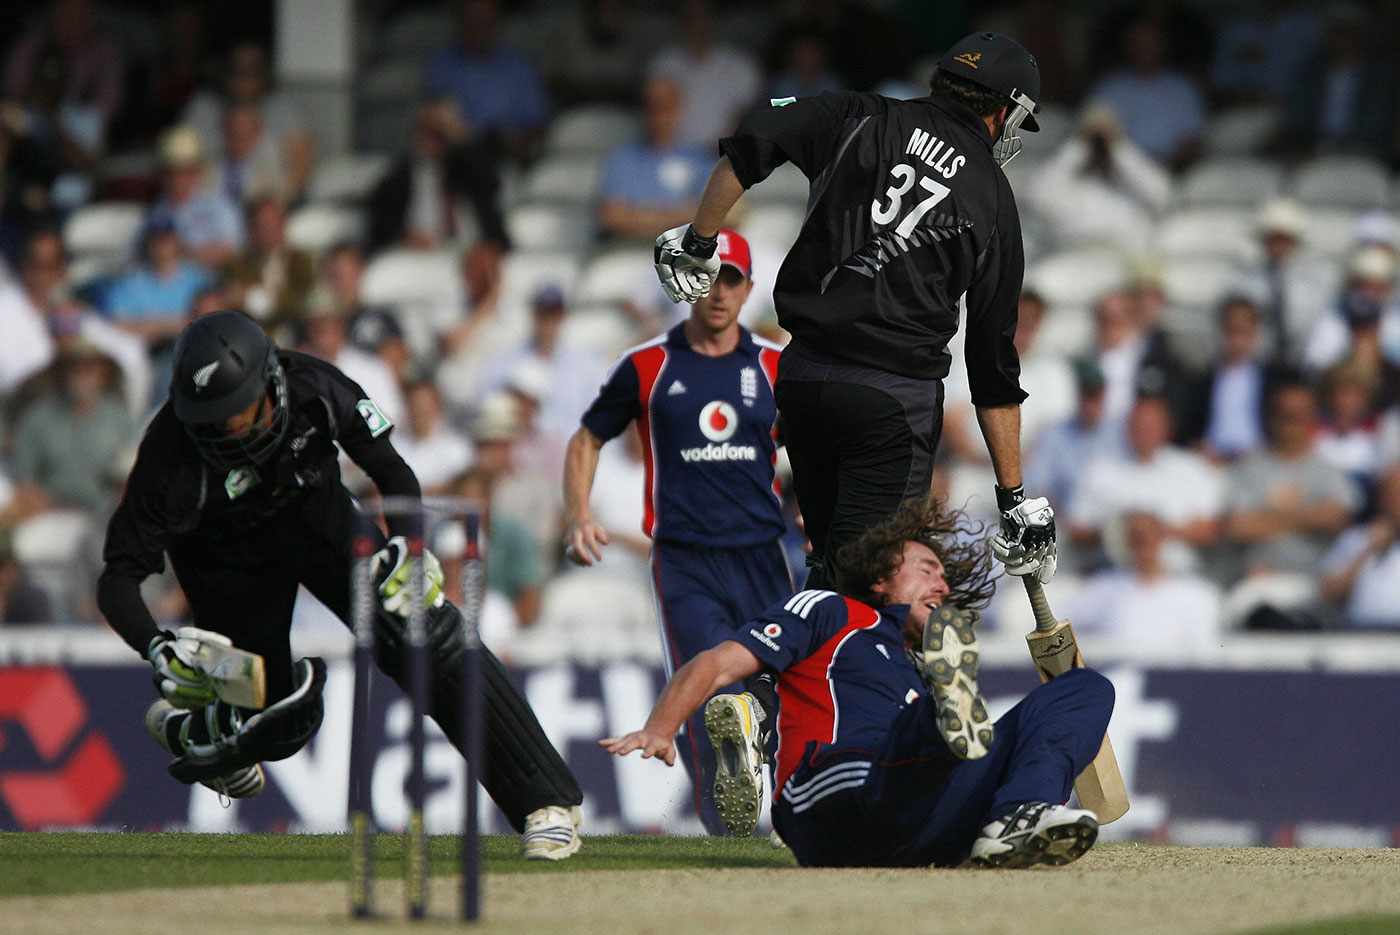 Full frontal: which player can be blamed for wilfully obstructing the other in the case of Ryan Sidebottom's collision with Grant Elliott?